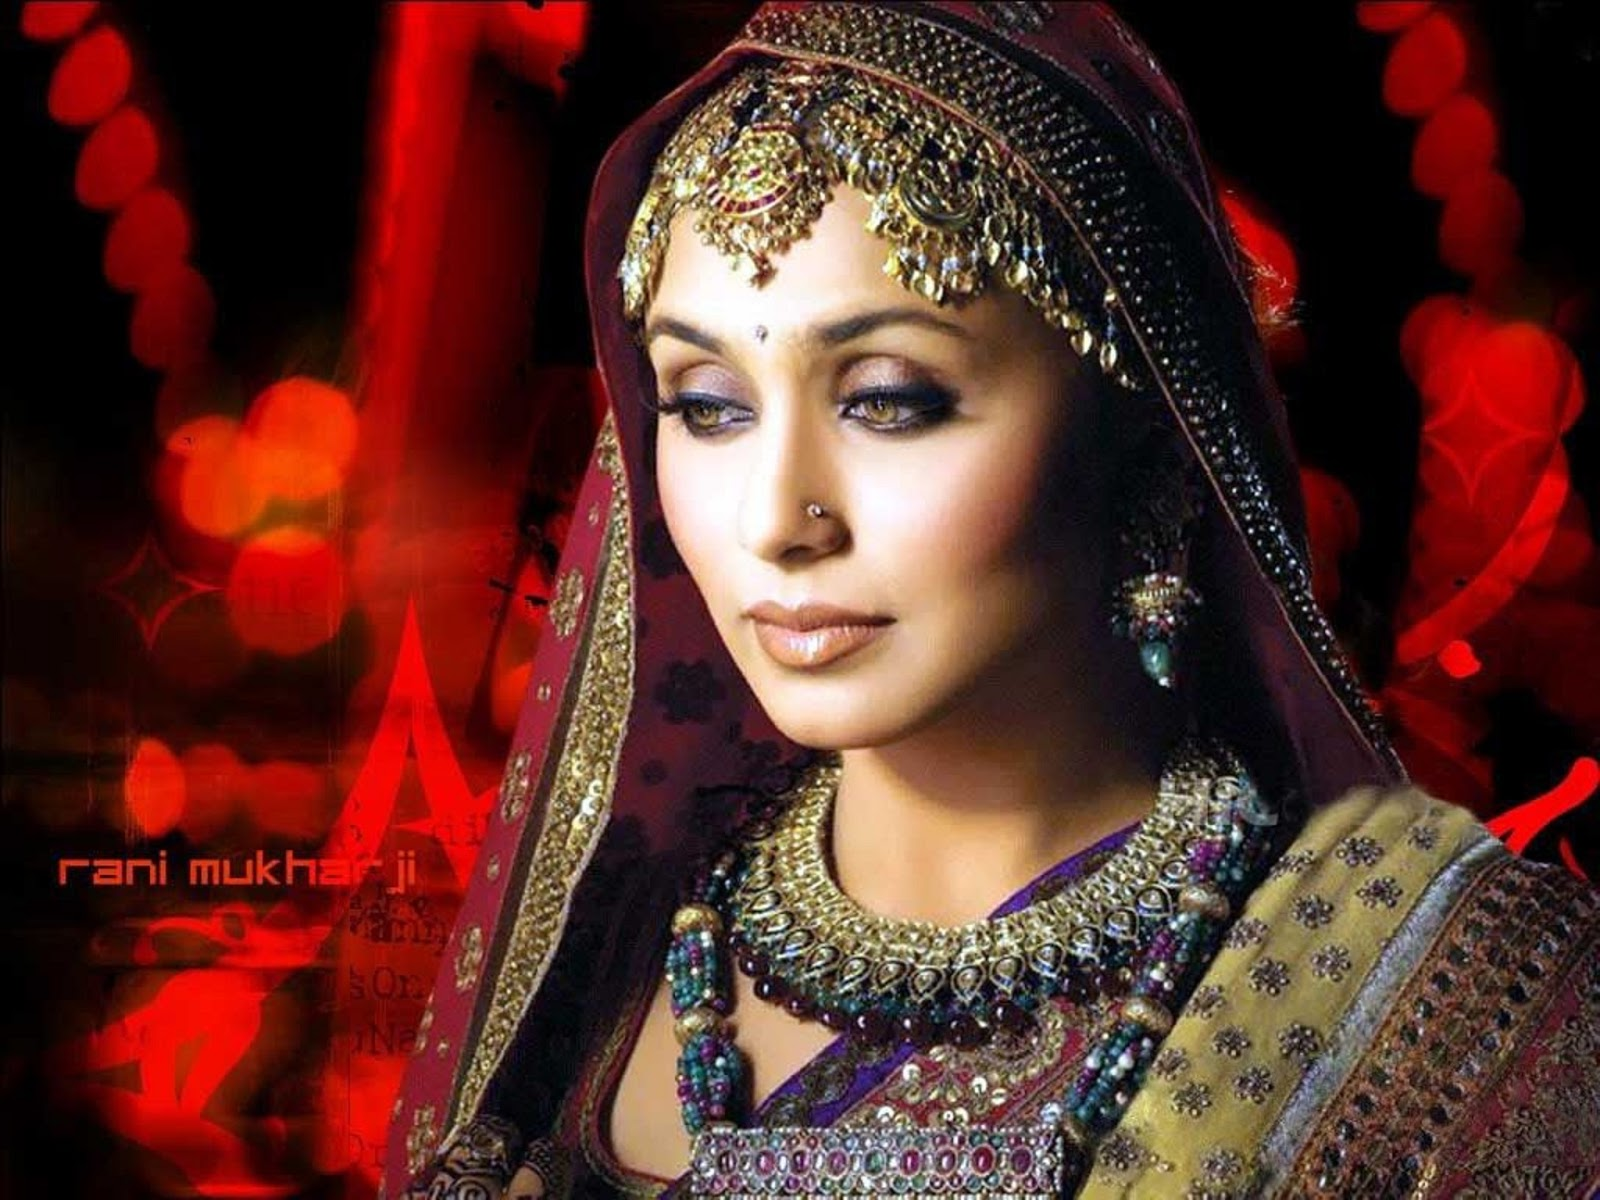 Free Bollywood Wallpapers Download 42 Wallpapers: Rani Mukherjee Wallpapers Free Download